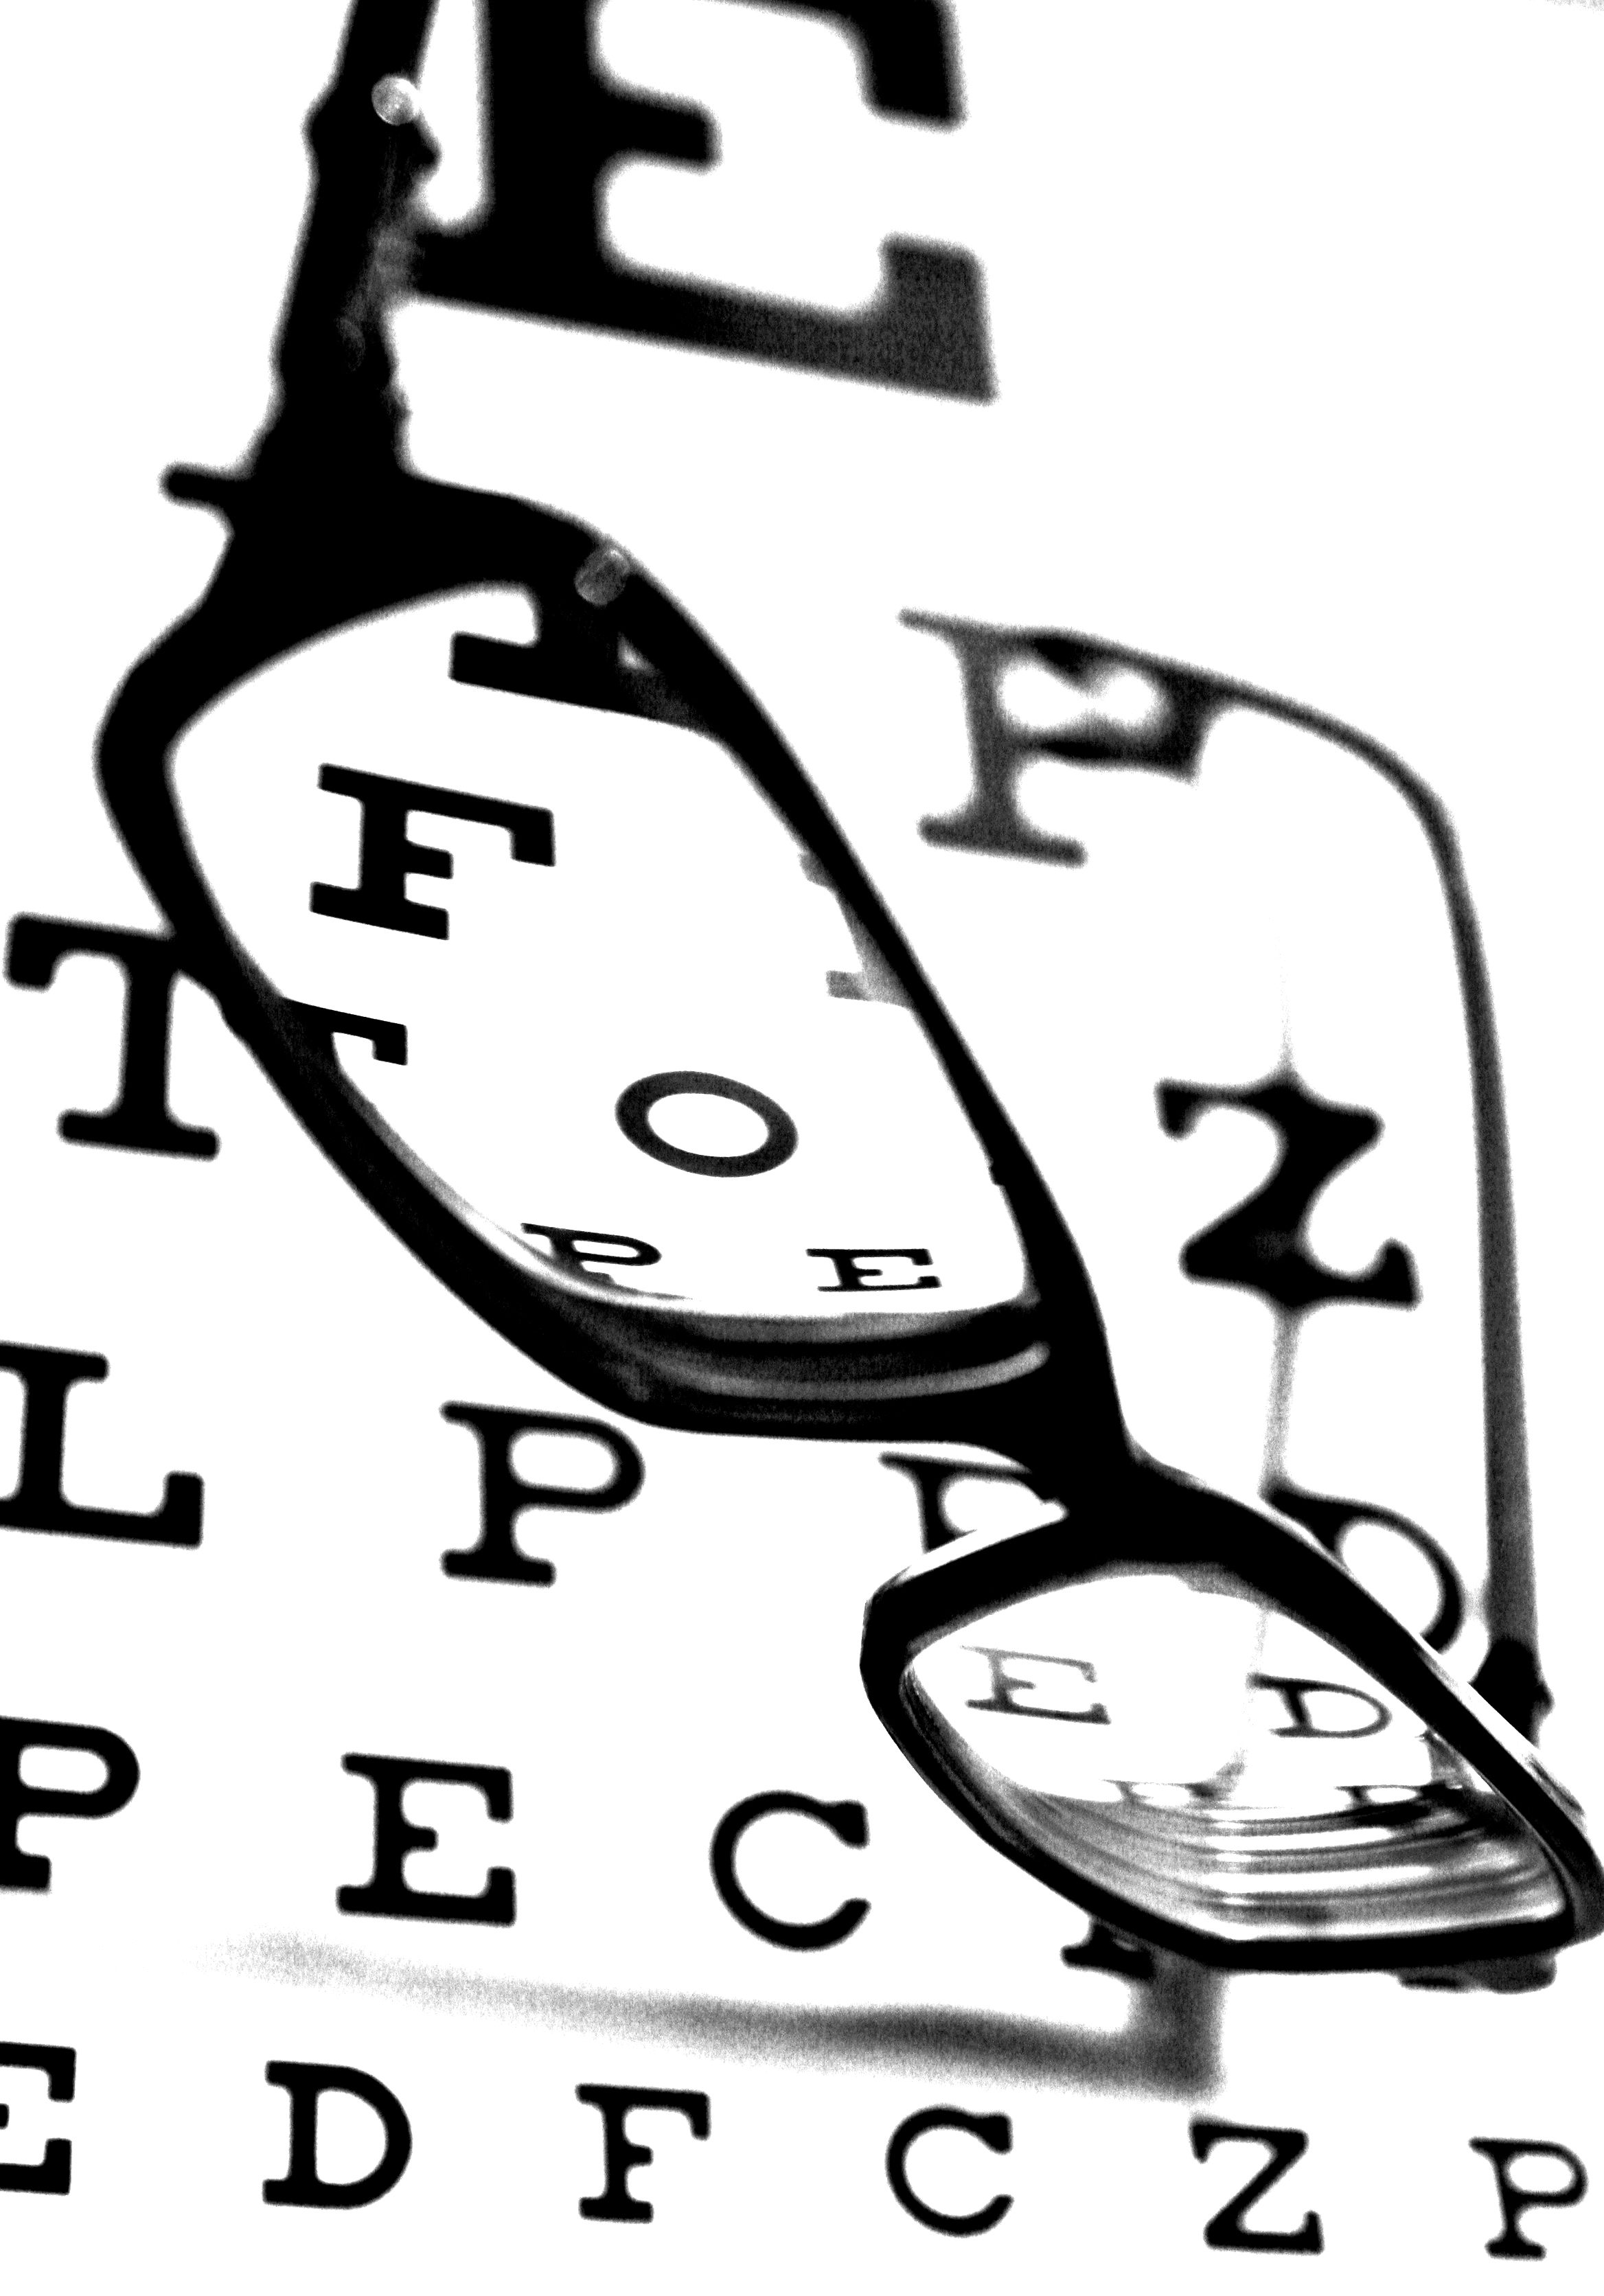 Frequently Asked Questions - Eyeglasses - Prescription glasses